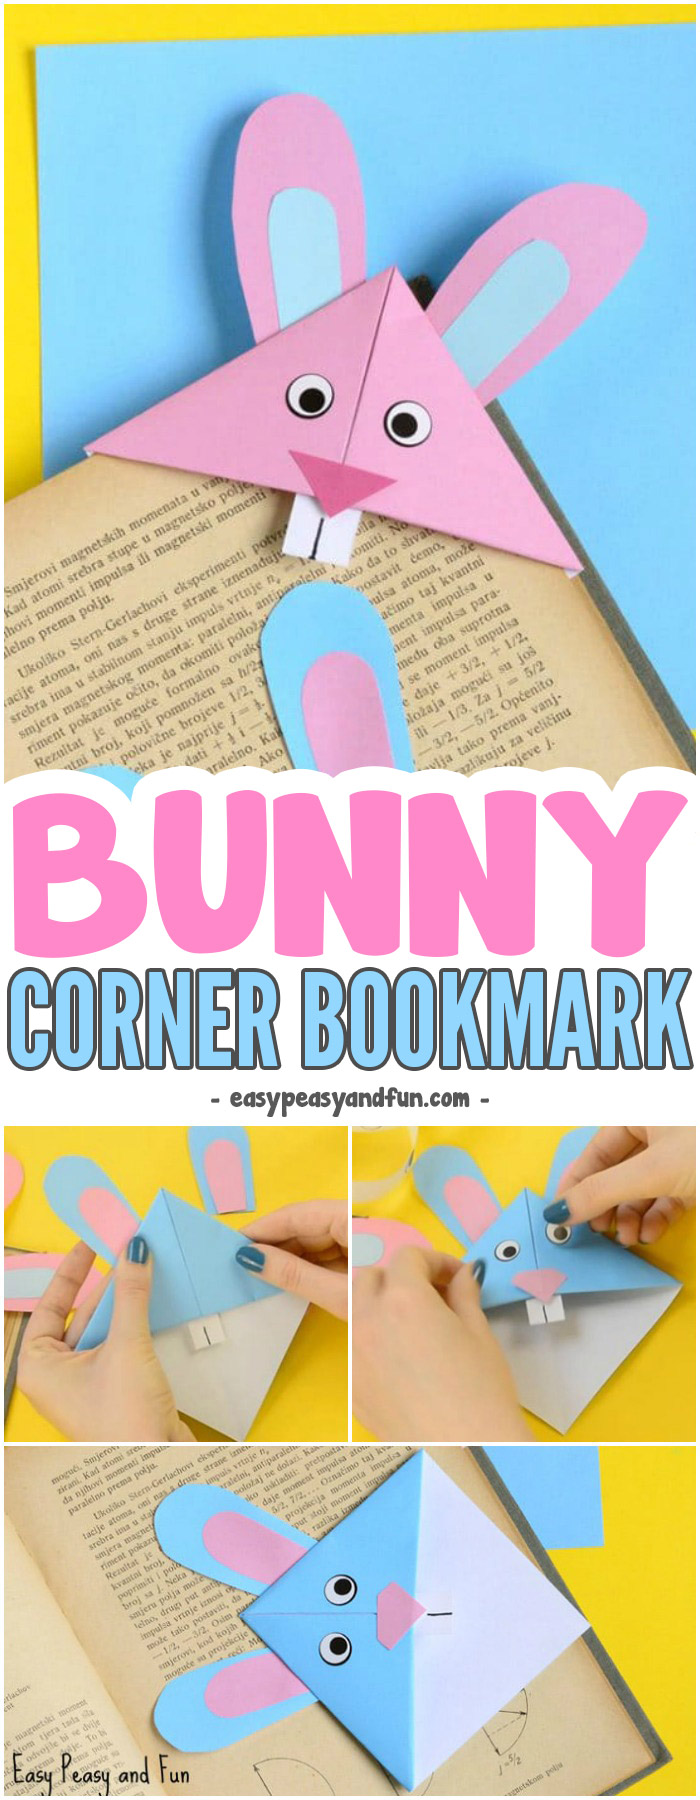 Adorable Easter Bunny Corner Bookmark Craft for Kids #craftsforkids #cornerbookmarkideas #eastercrafts